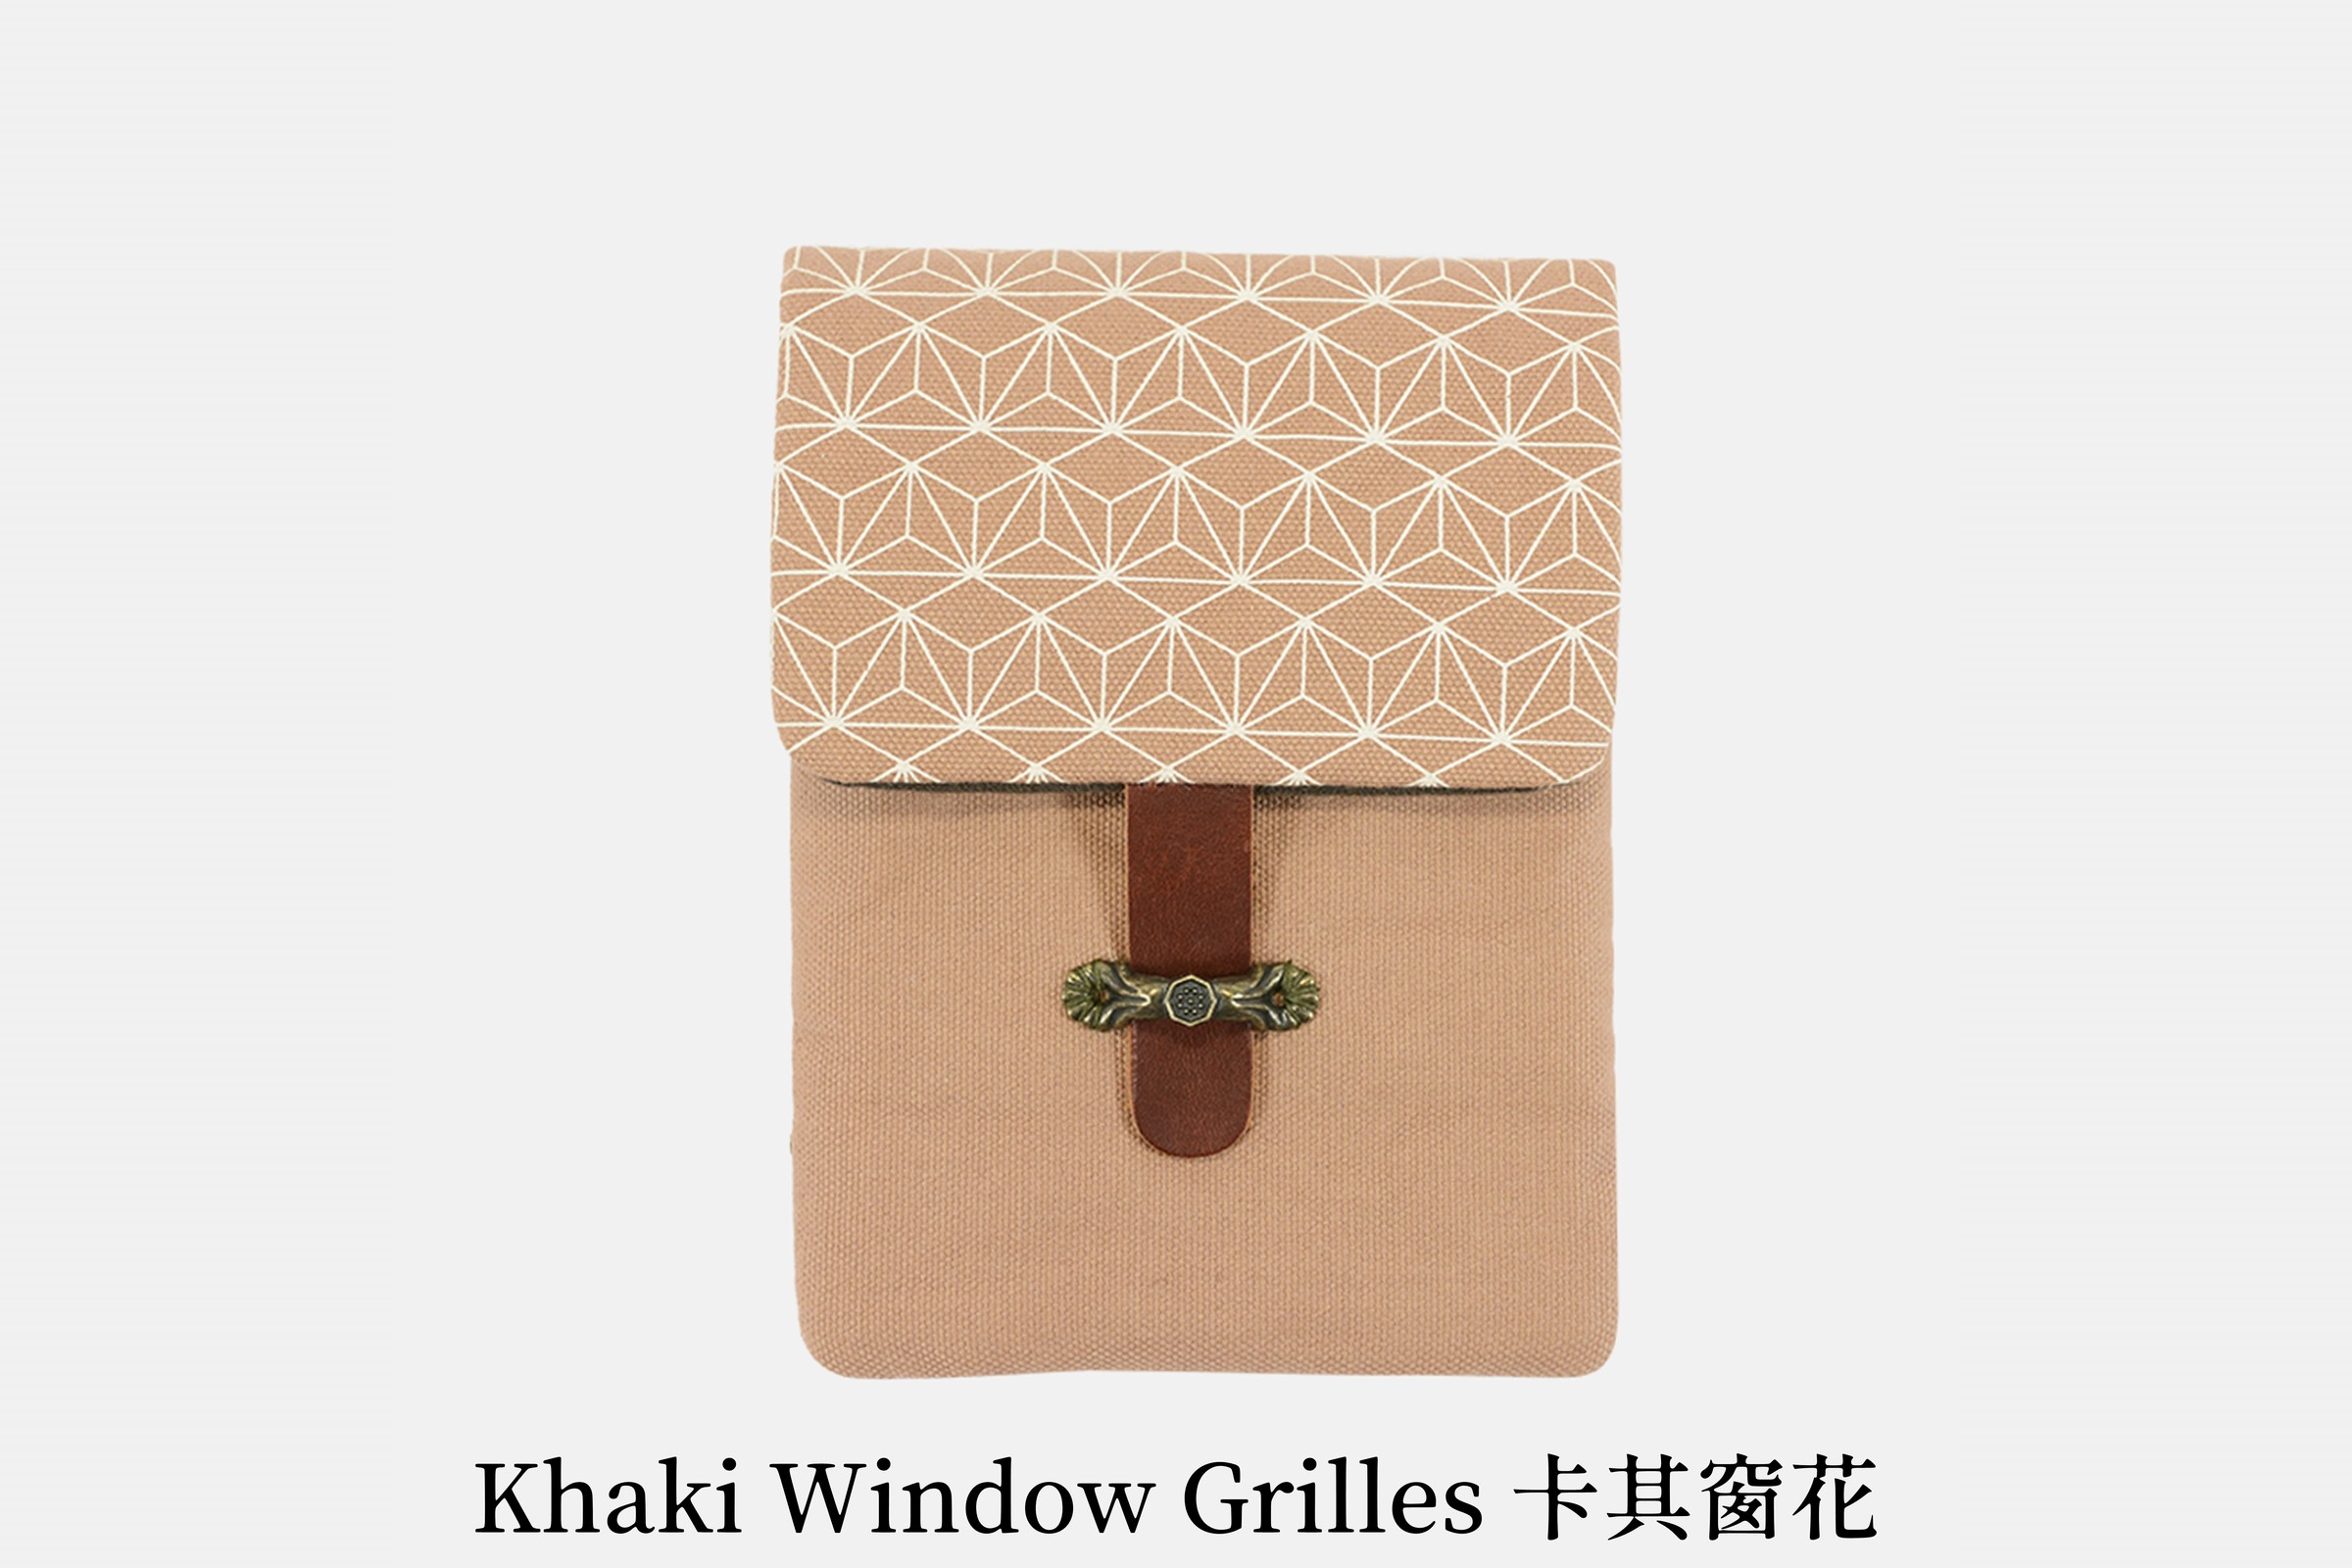 Flip-up Khaki Window Grilles 卡其窗花.jpg